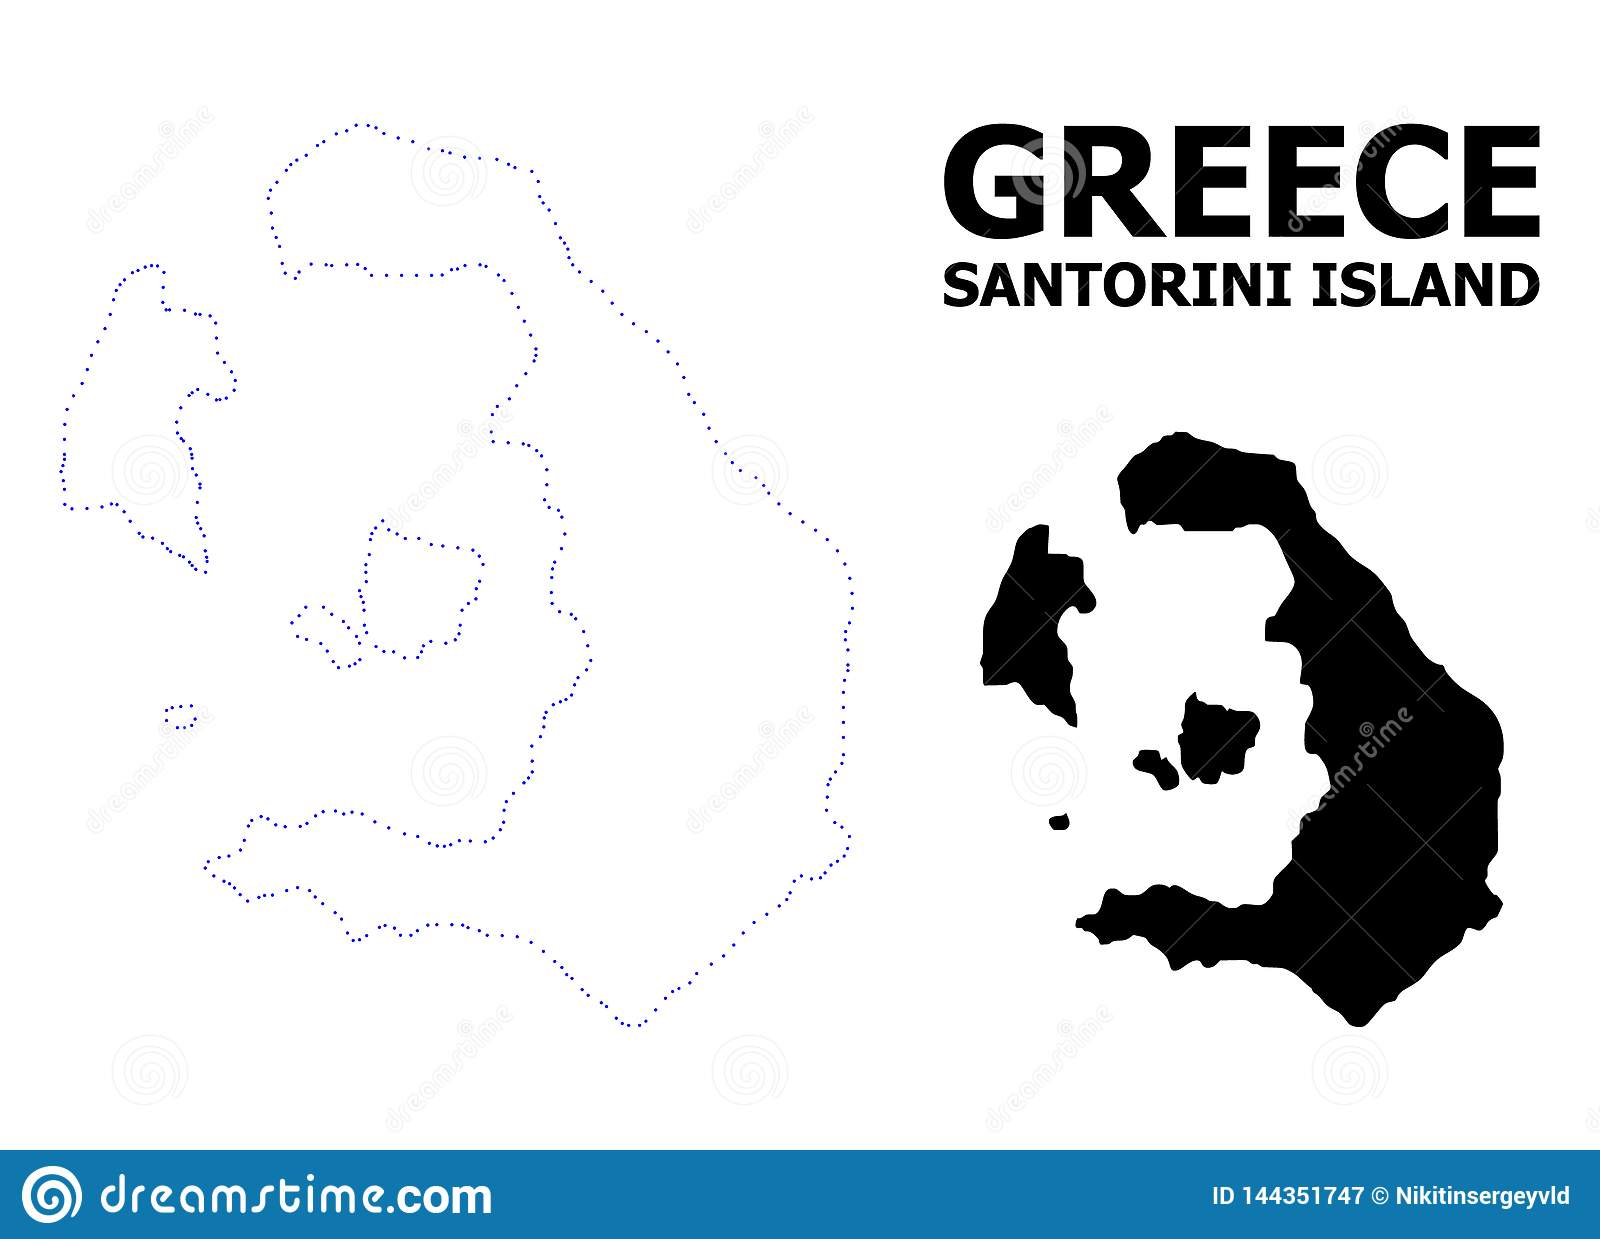 Vector Contour Dotted Map Of Santorini Island With Name Stock Vector on map of current volcanic activity, map of patmos, map of penedes, map of northern rhone, map of akrotiri, map of spain, map of orestiada, map of greek islands, map of bear island, map of rio de janeiro, map of rovaniemi, map of pommard, map of oia, map of kastellorizo, map of greece, map of agrinio, map of mykonos, map of isla margarita, map of ancient minoans, map of crete,